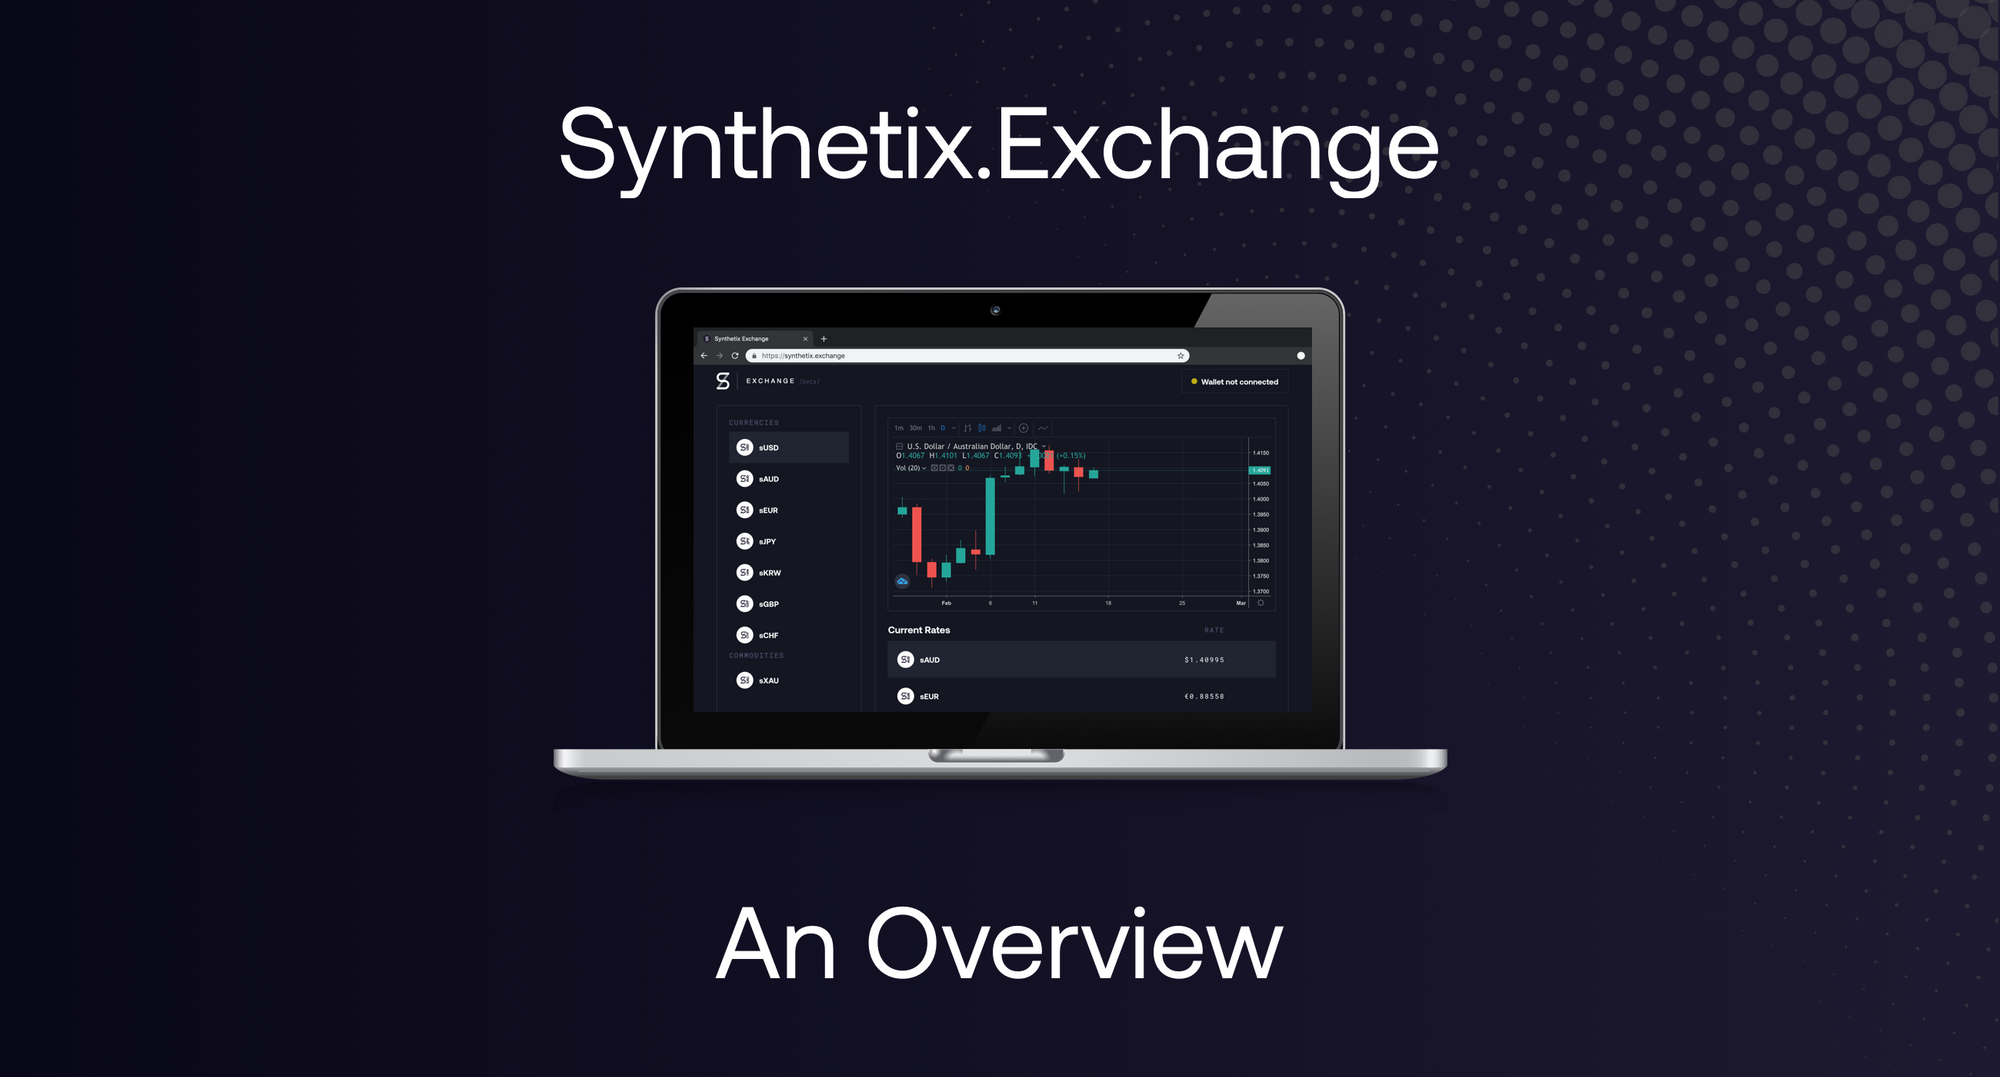 Synthetix.Exchange Overview